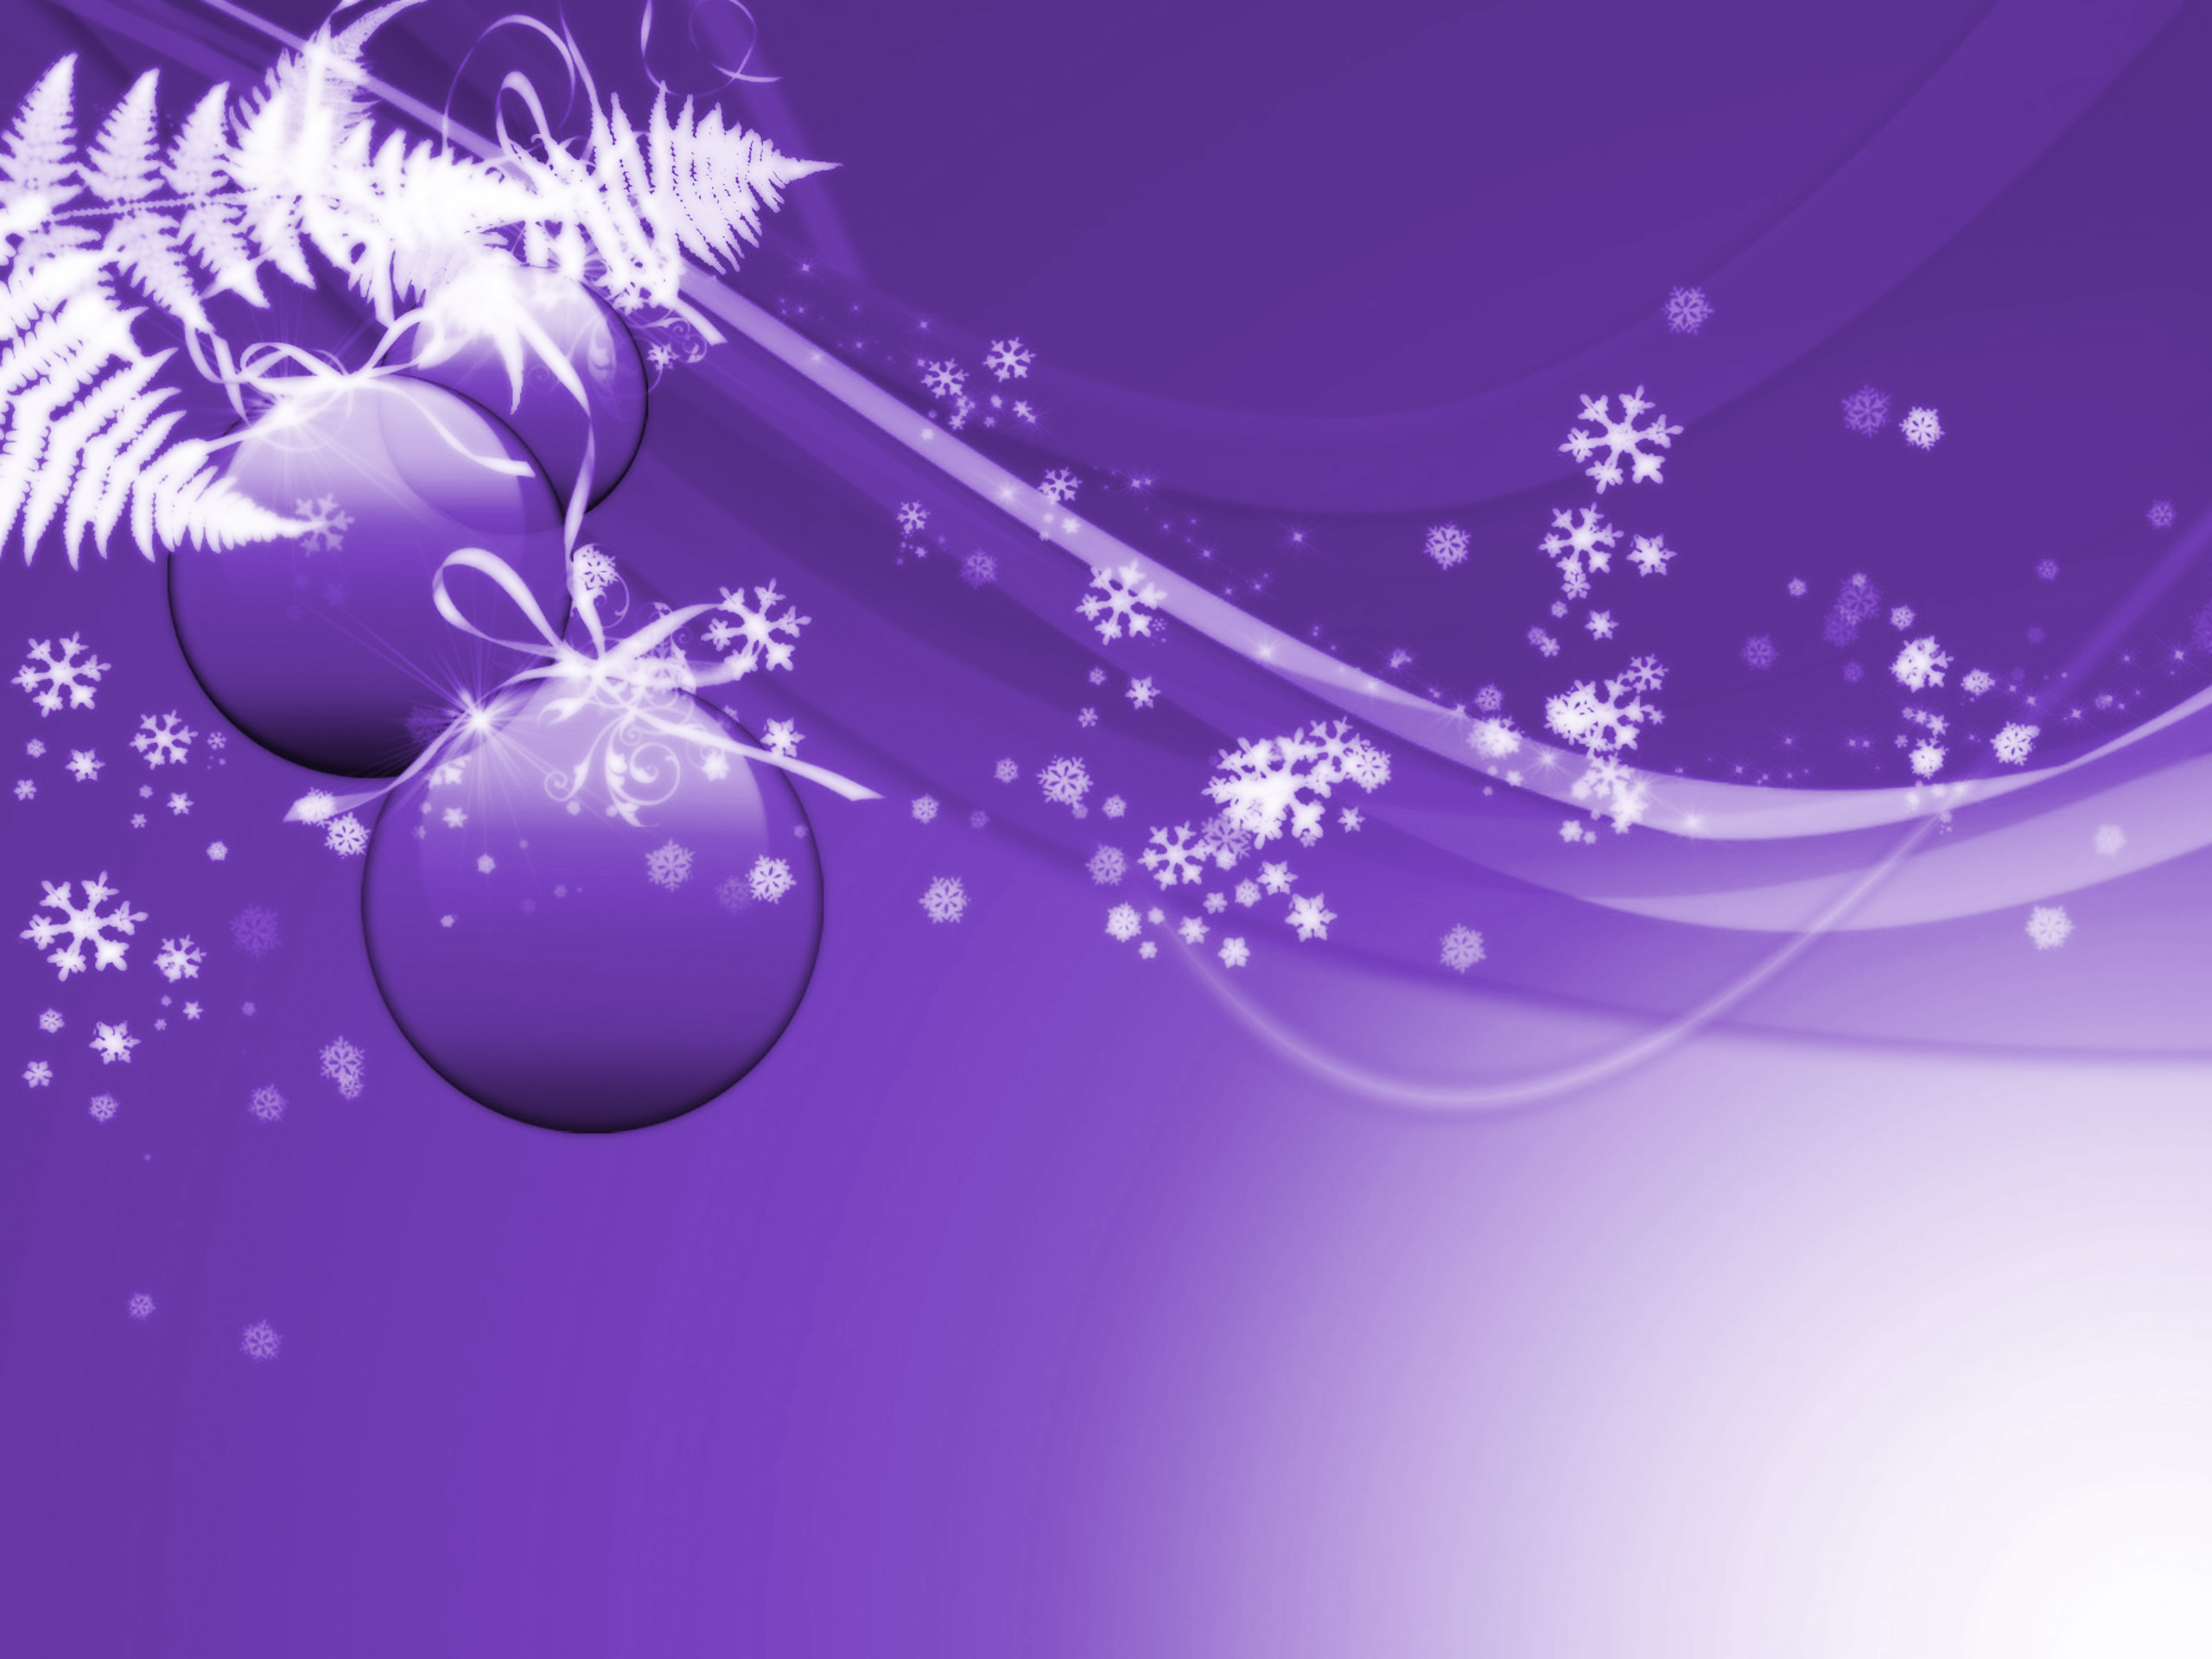 Merry Christmas | Free Desktop Wallpapers for Widescreen, HD and ...